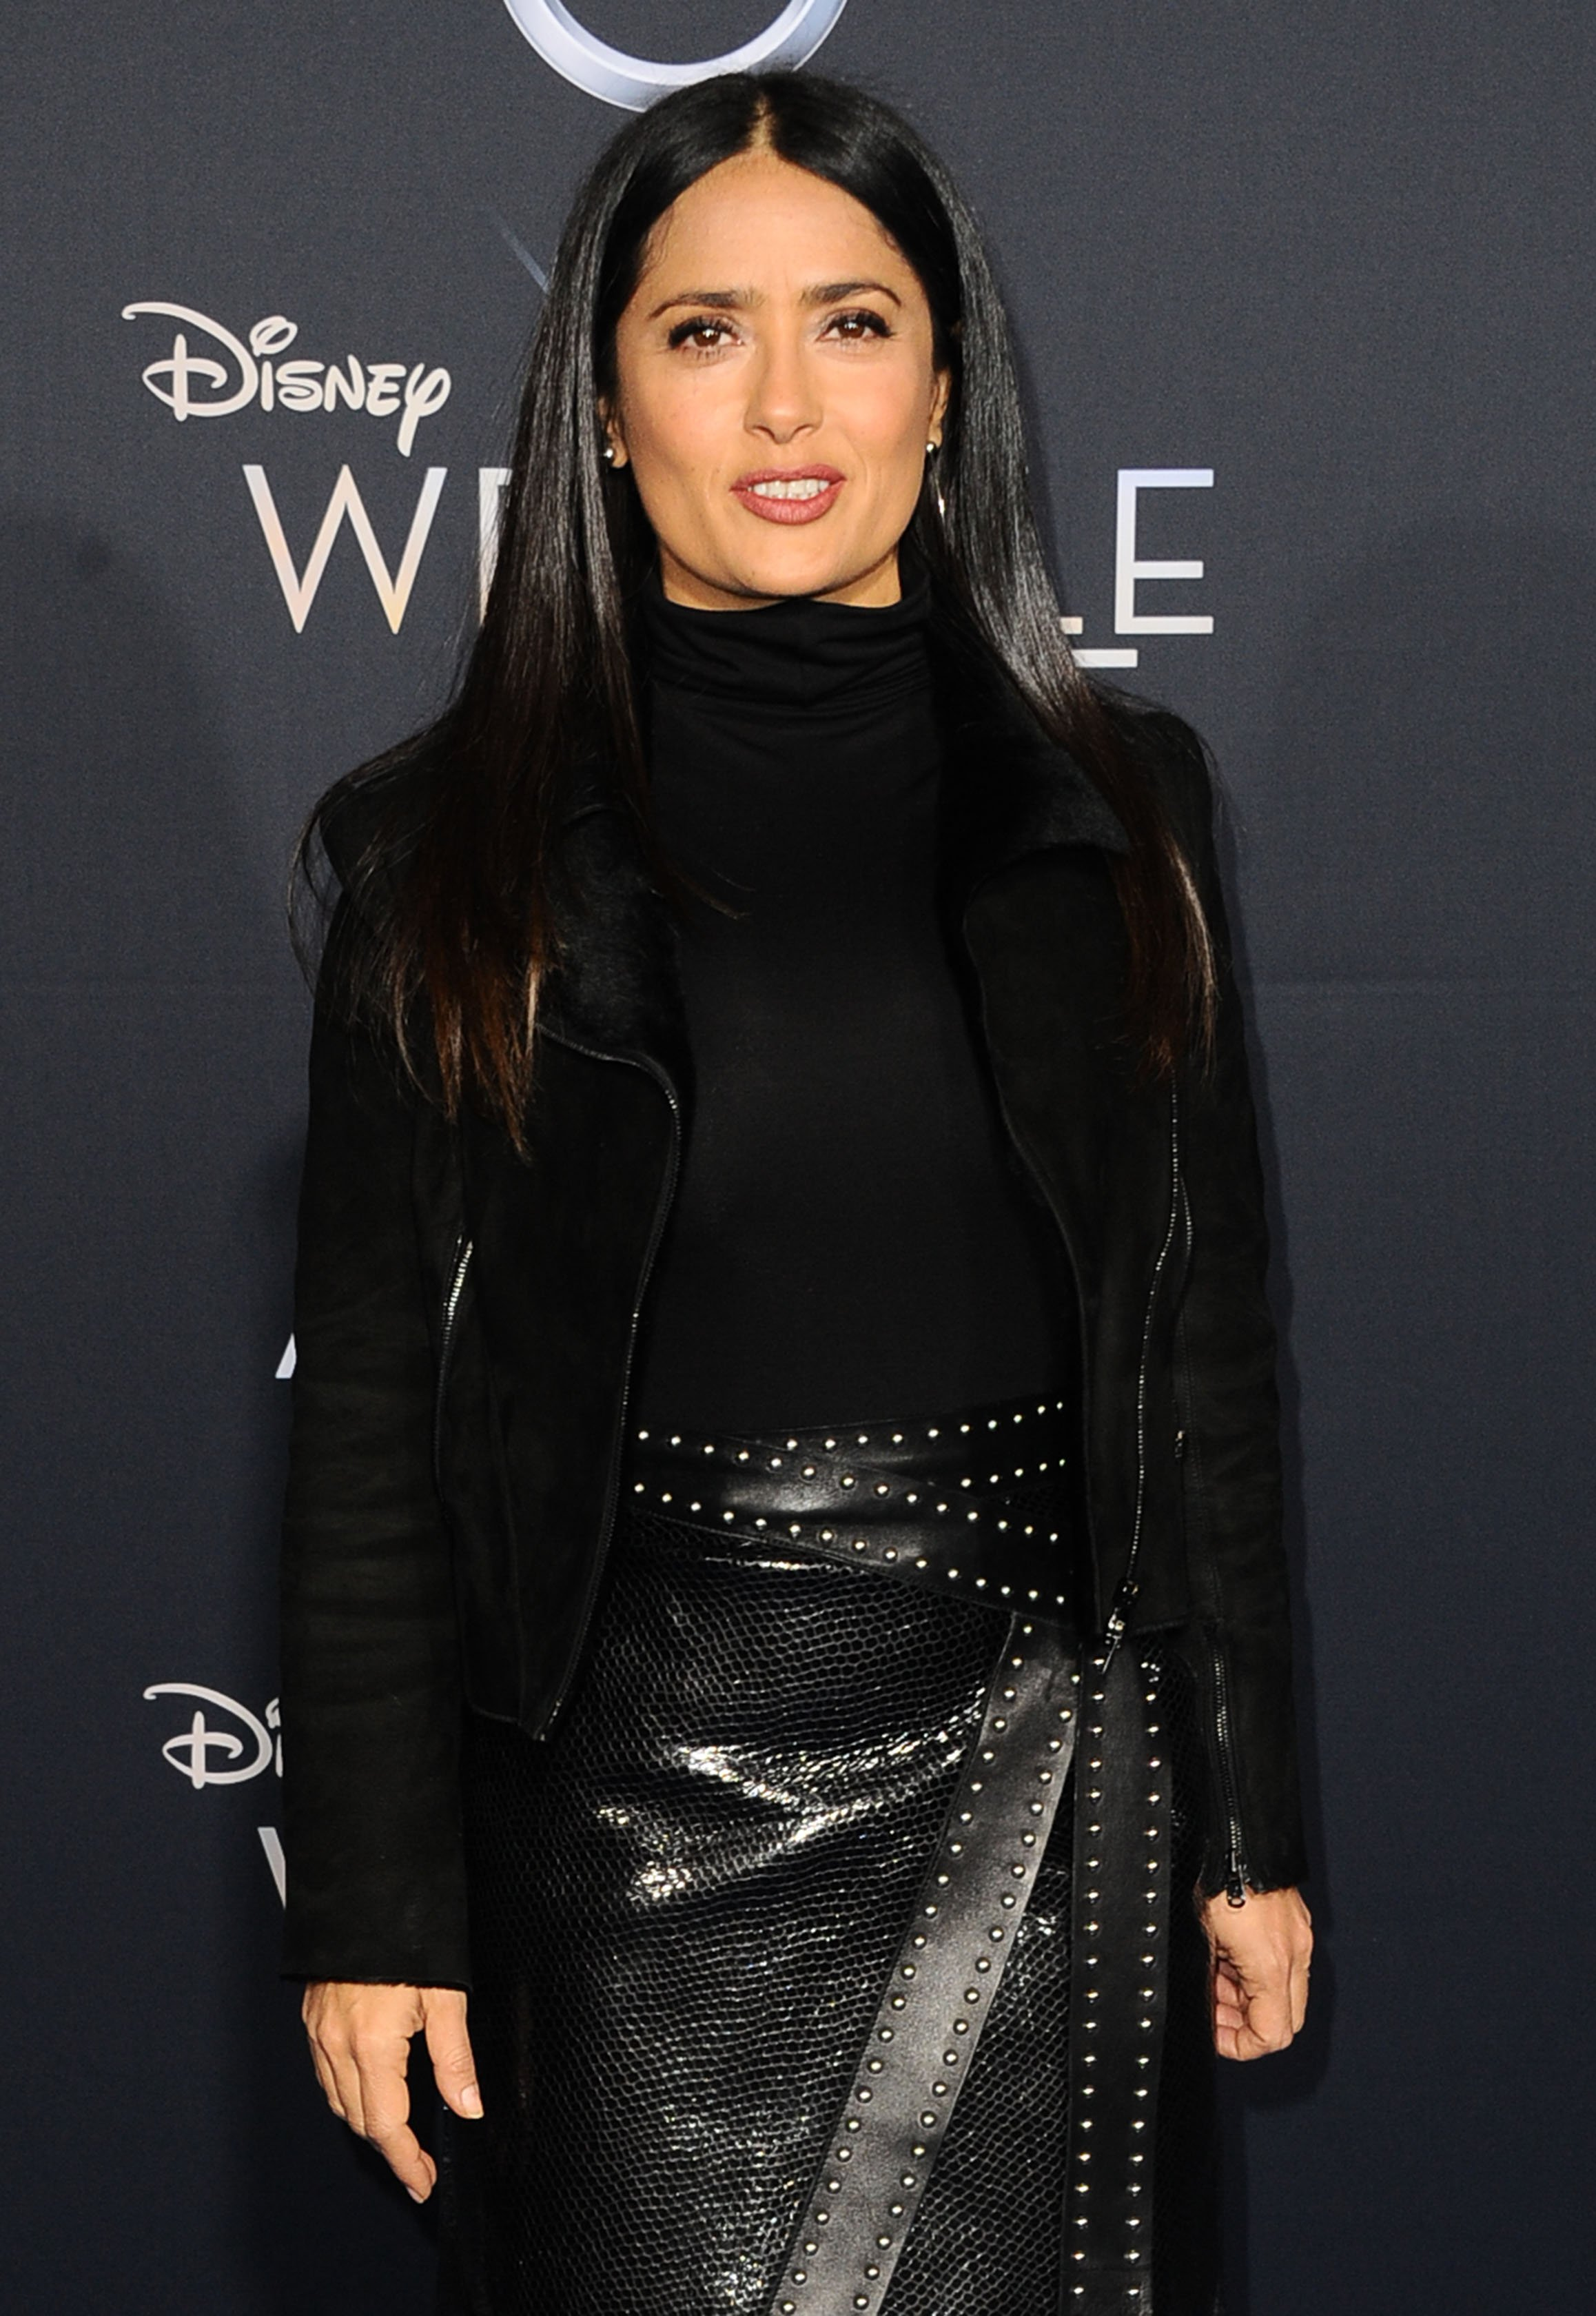 , Los Angeles, CA -20180226 -  The Los Angeles Premiere of A Wrinkle in Time  -PICTURED: Salma Hayek -, Image: 364441375, License: Rights-managed, Restrictions: , Model Release: no, Credit line: Profimedia, INSTAR Images